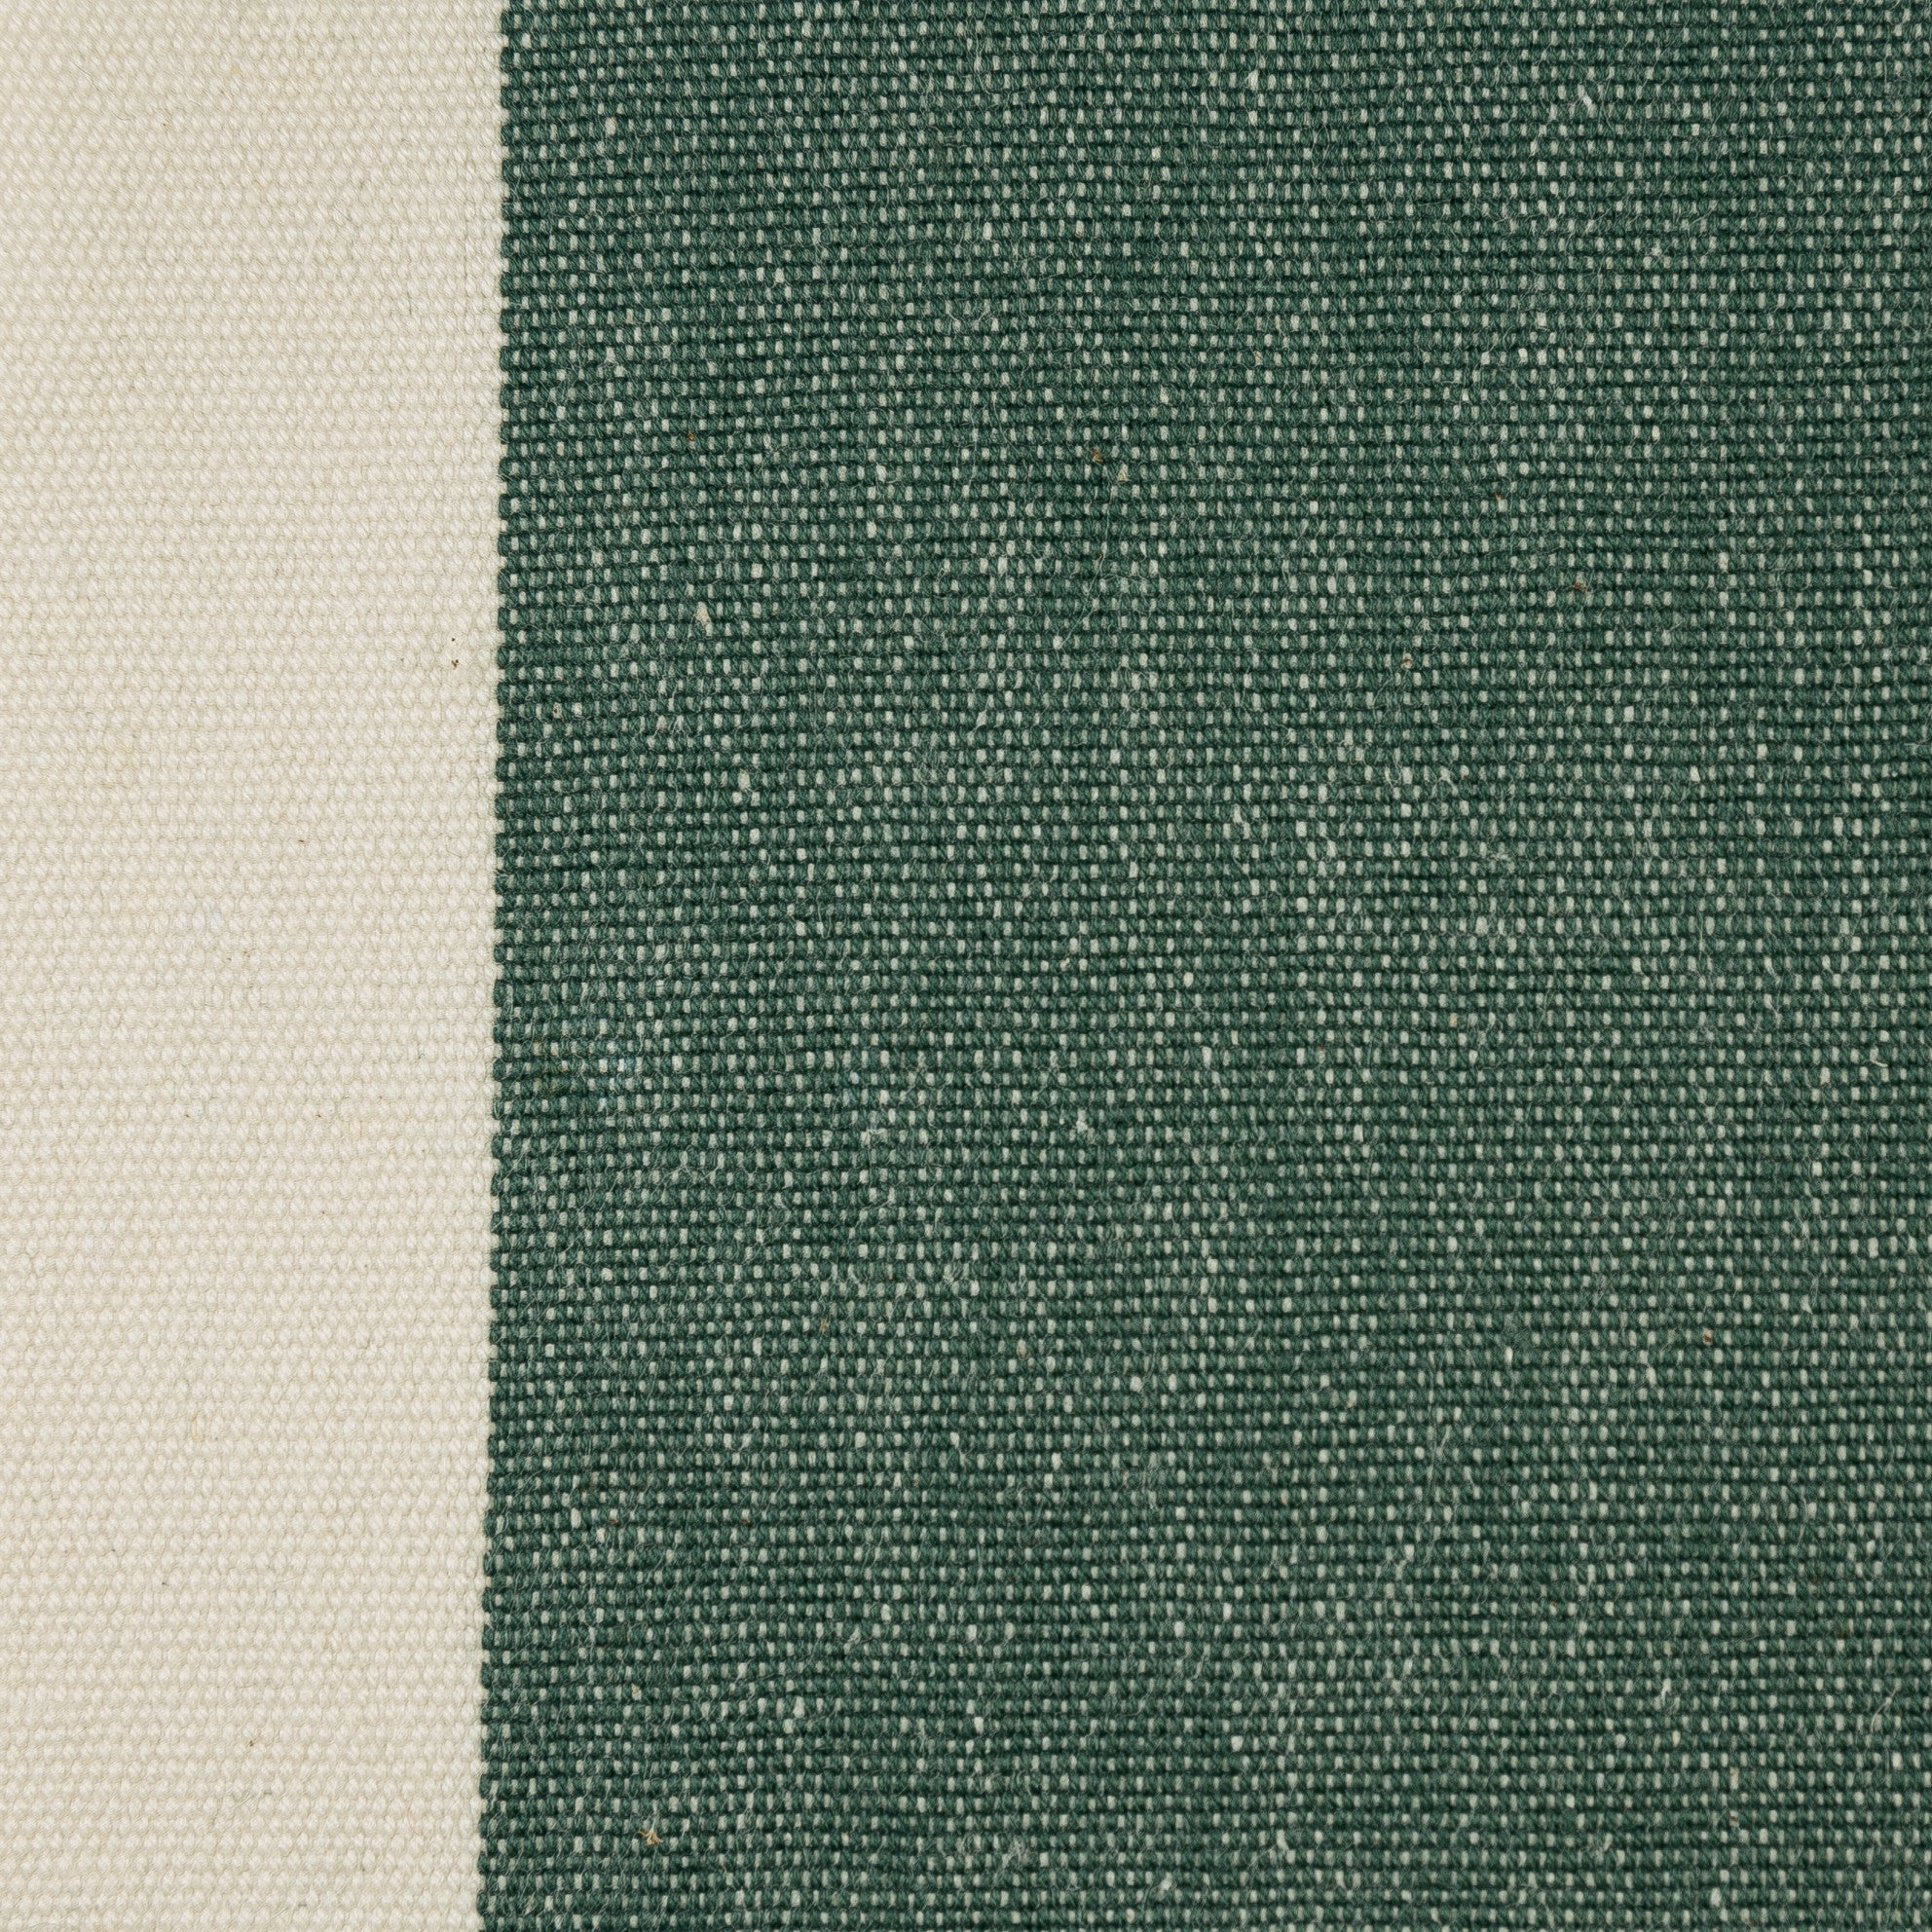 Woven Striped Fabric - Lizard 39/062 Fern Green | Nicholas Engert Interiors